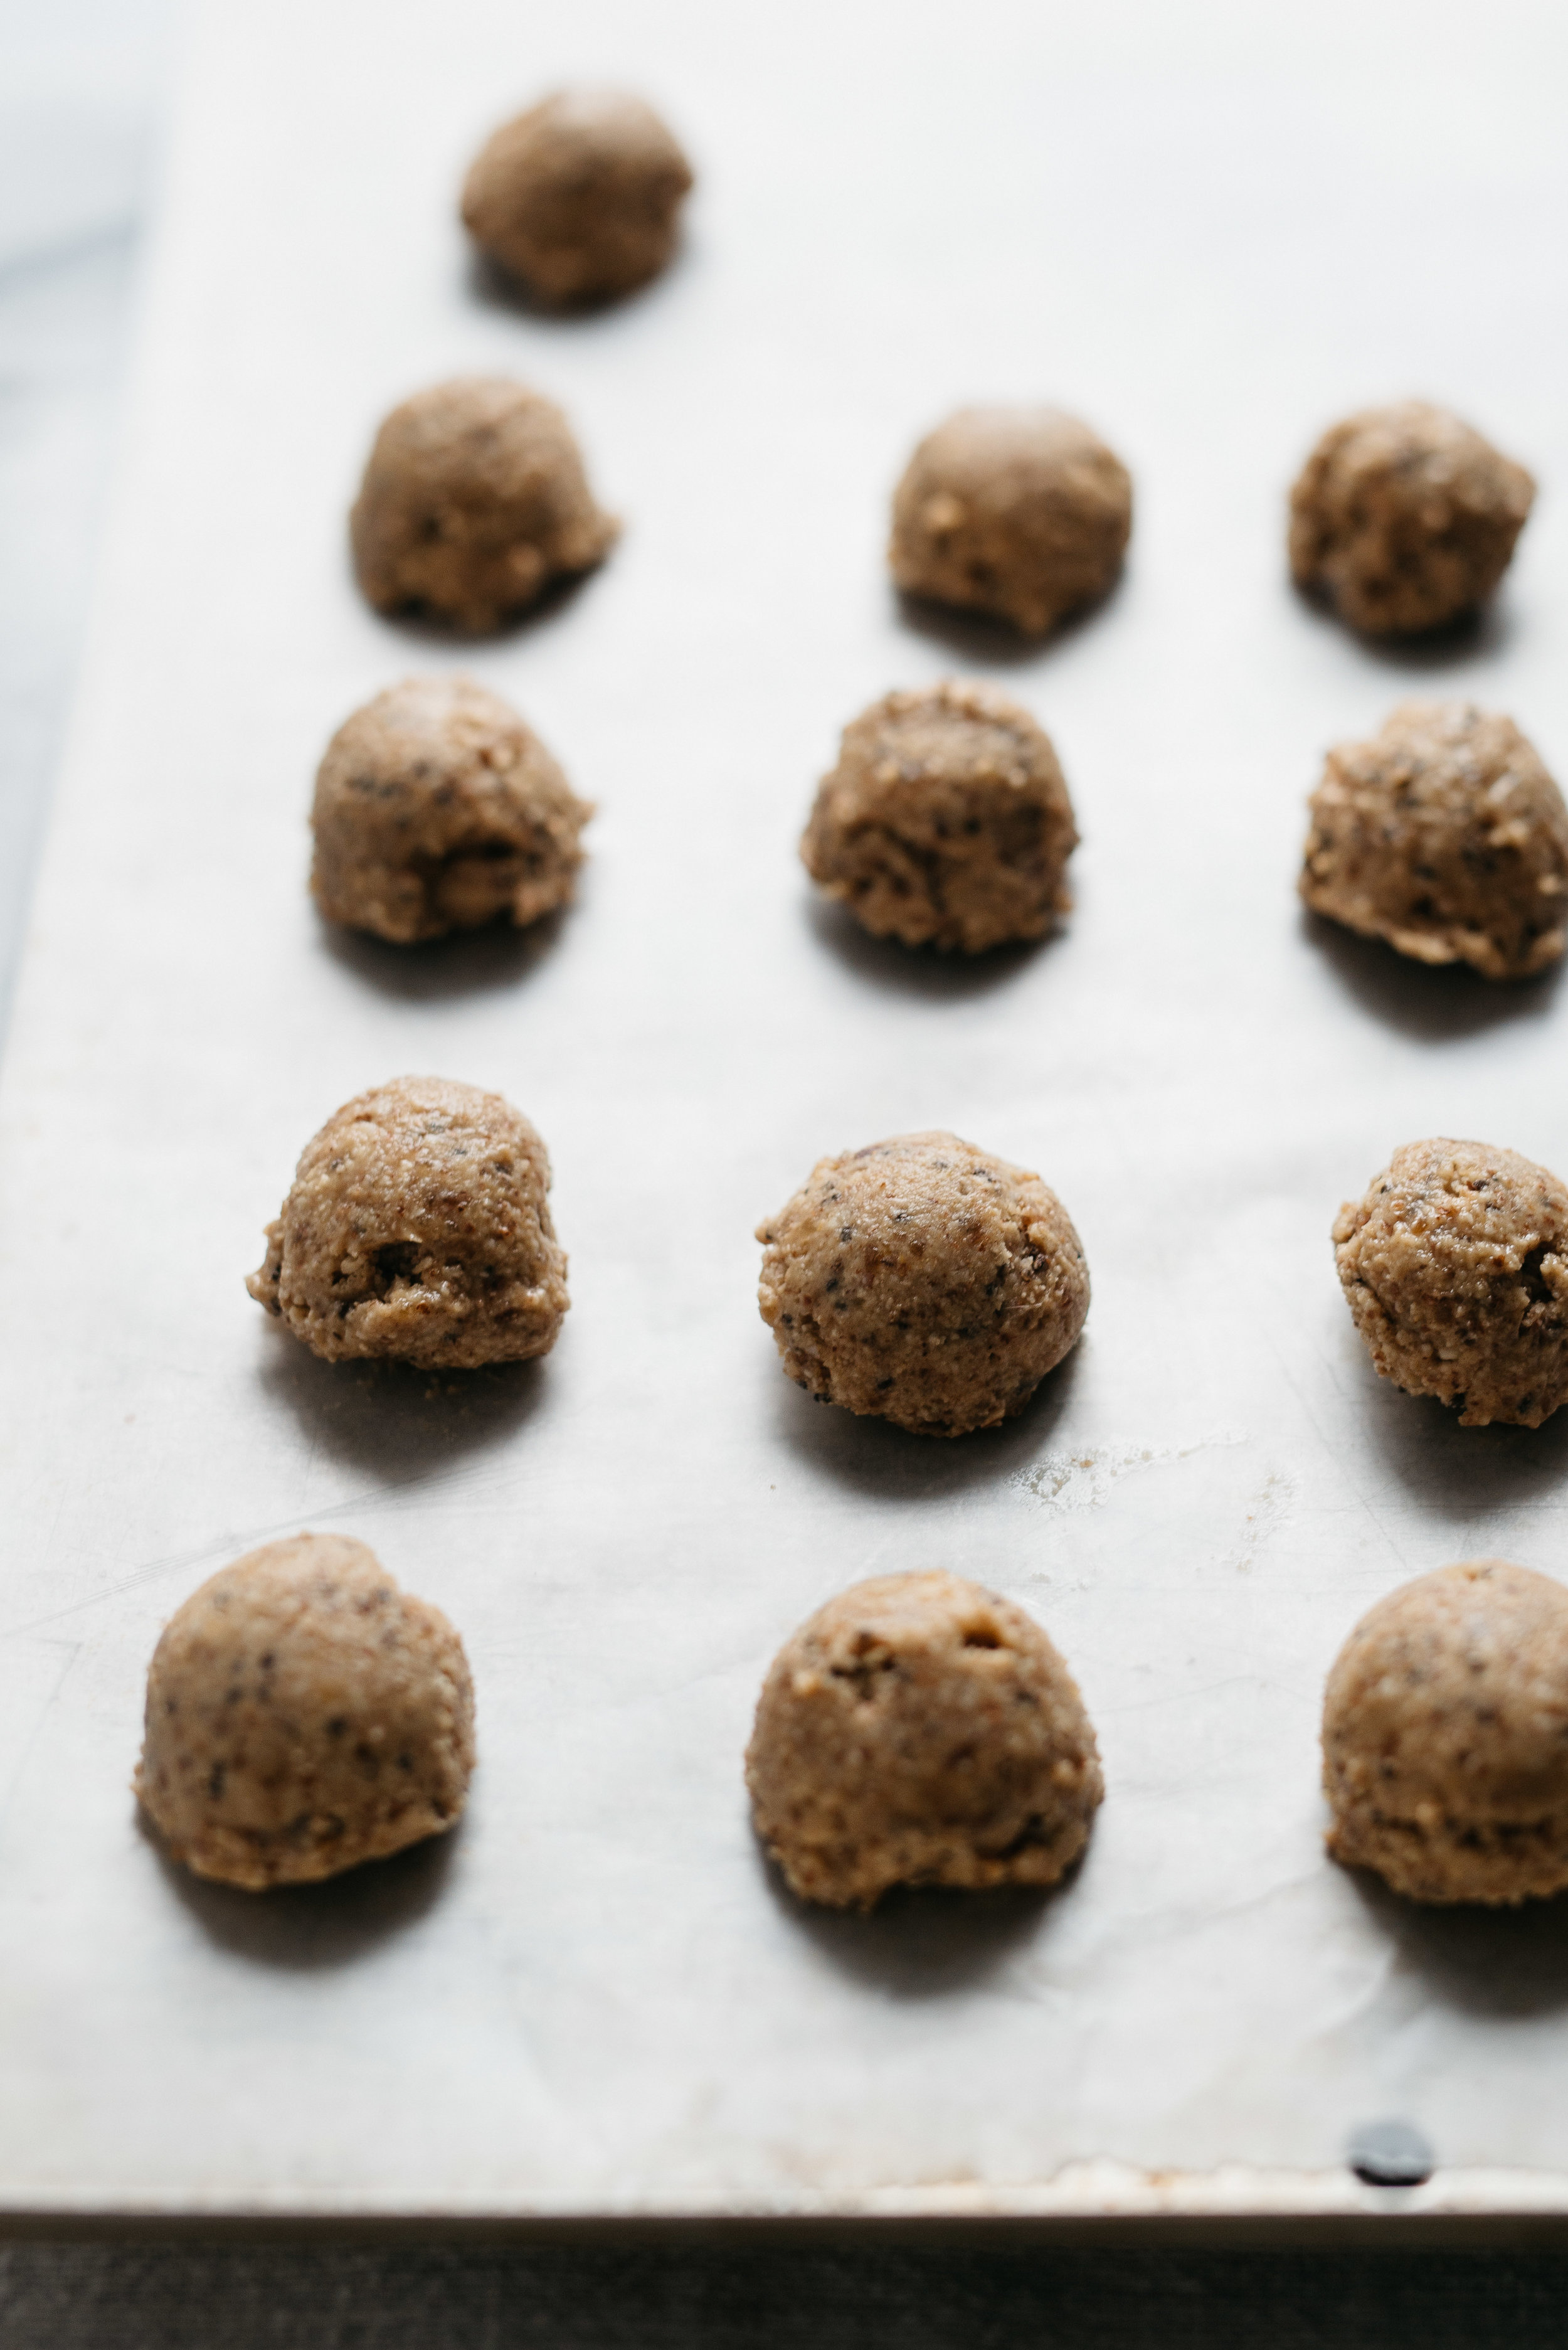 Almond-Cashew & Chia Balance Balls | dolly and oatmeal